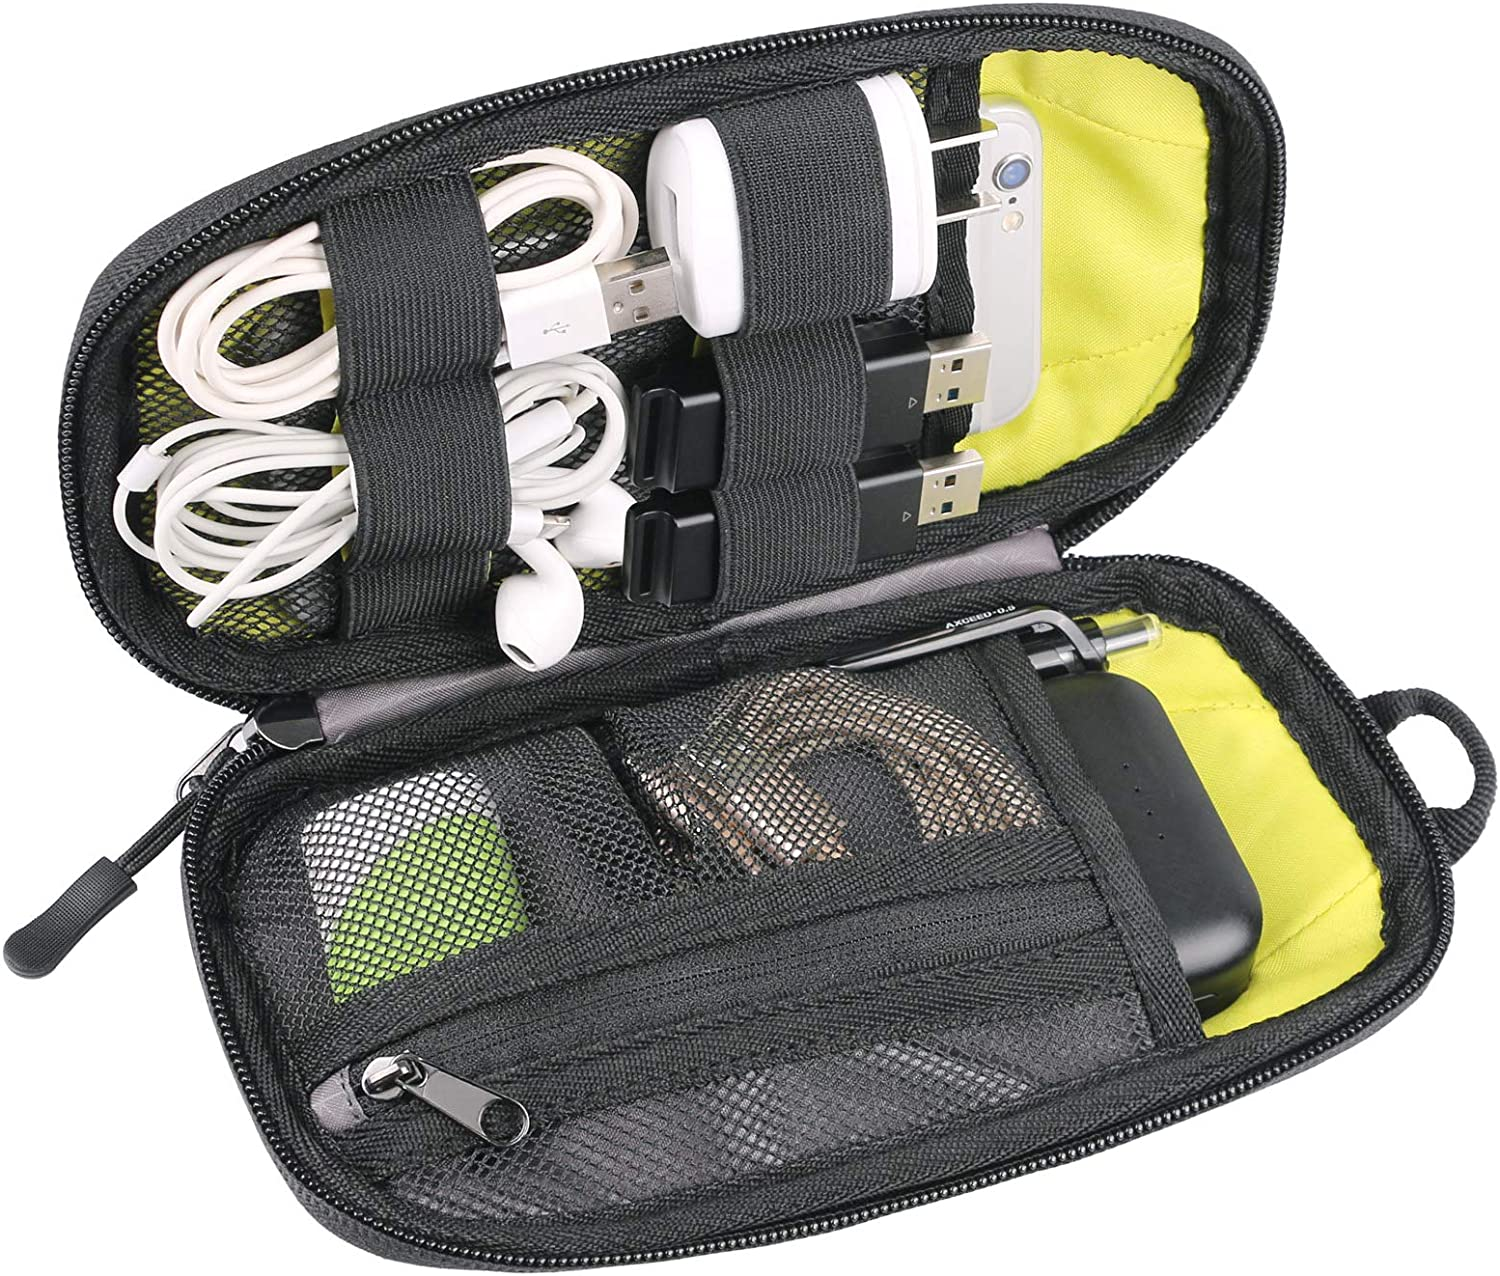 Twod Electronic Organizer Travel Universal Accessories Storage Bag Portable for Hard Drives, Cables, Memory Sticks, Charger, Phone, USB,SD Cards